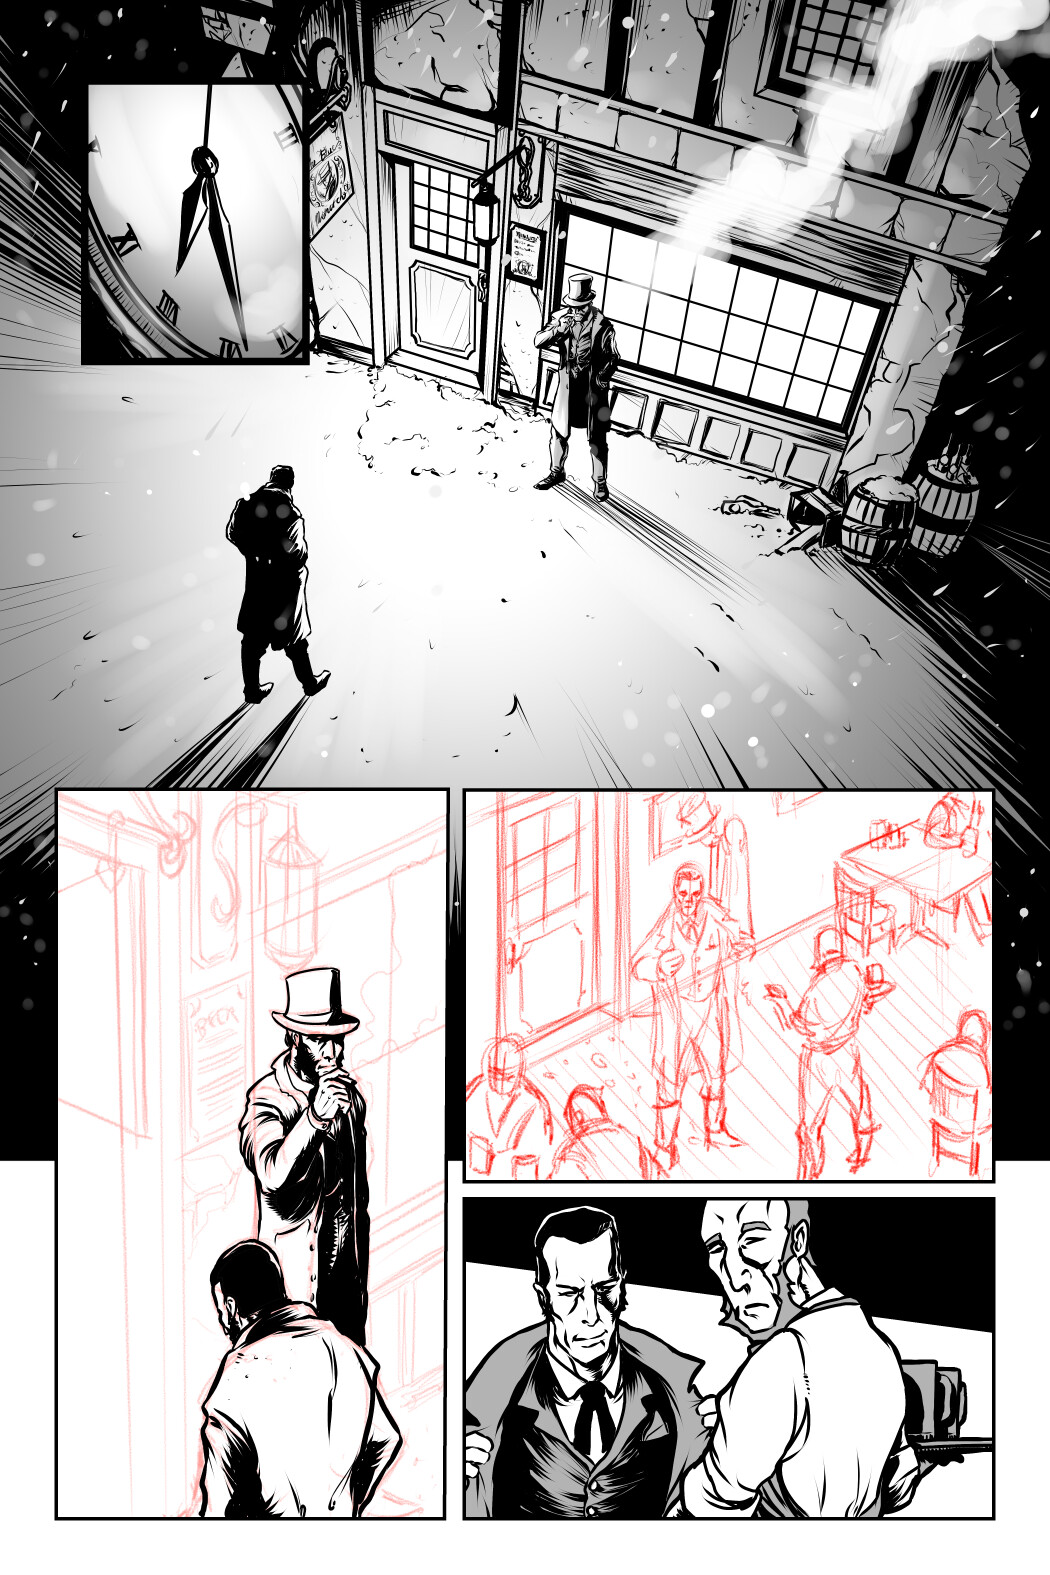 Loc nguyen out of time page 1 8 rough ink 2